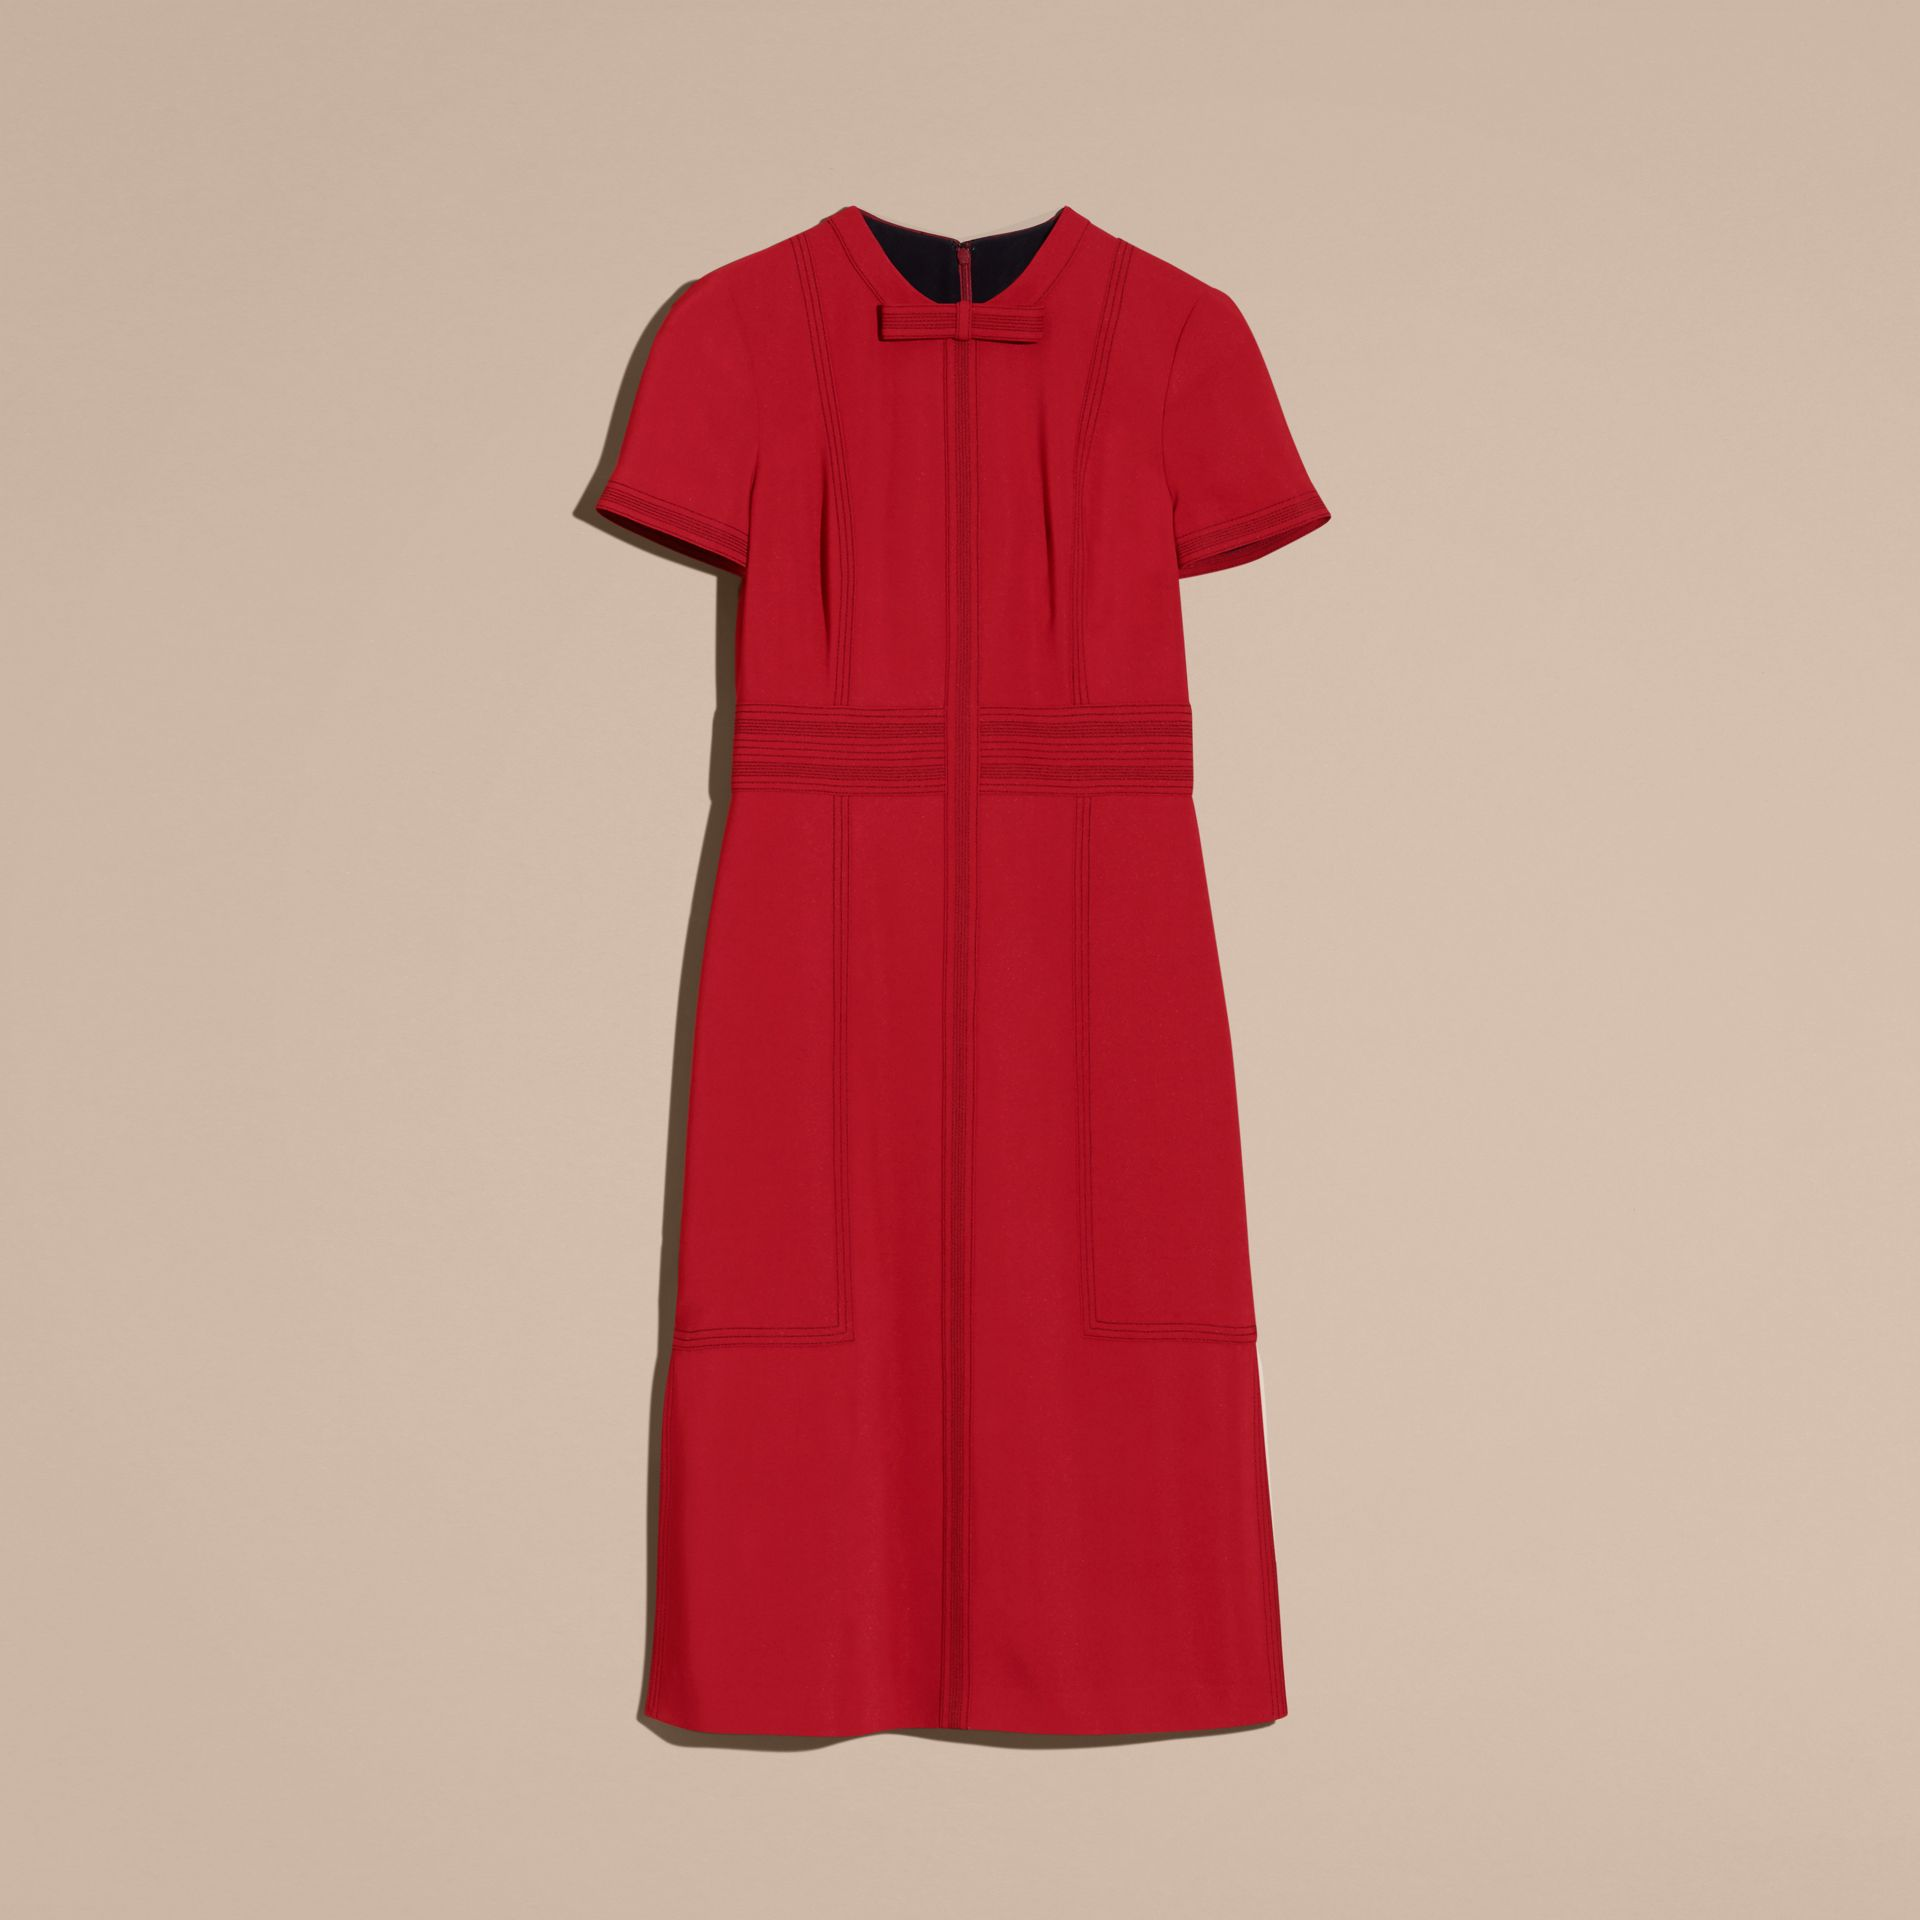 Parade red Short-sleeved Topstitch Detail Shift Dress - gallery image 4